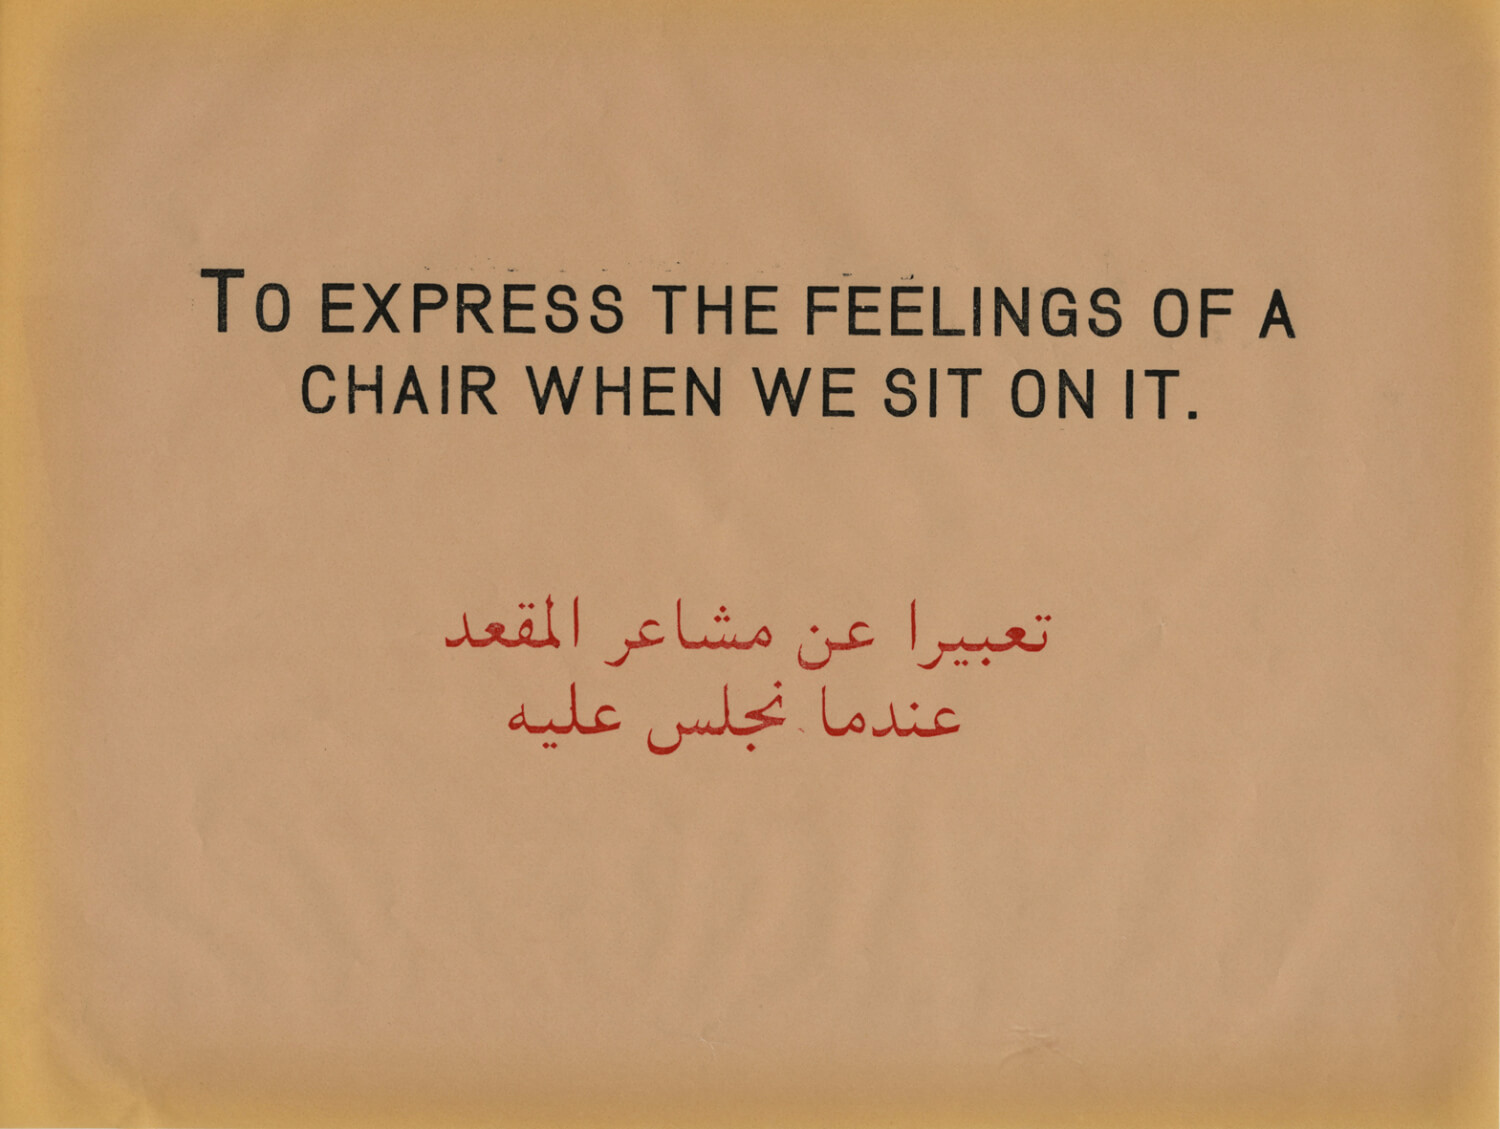 To Express the Feelings of a Chair When We Sit on it, Prestige of Terror, 2010, Work on paper, 22 x 28 cm